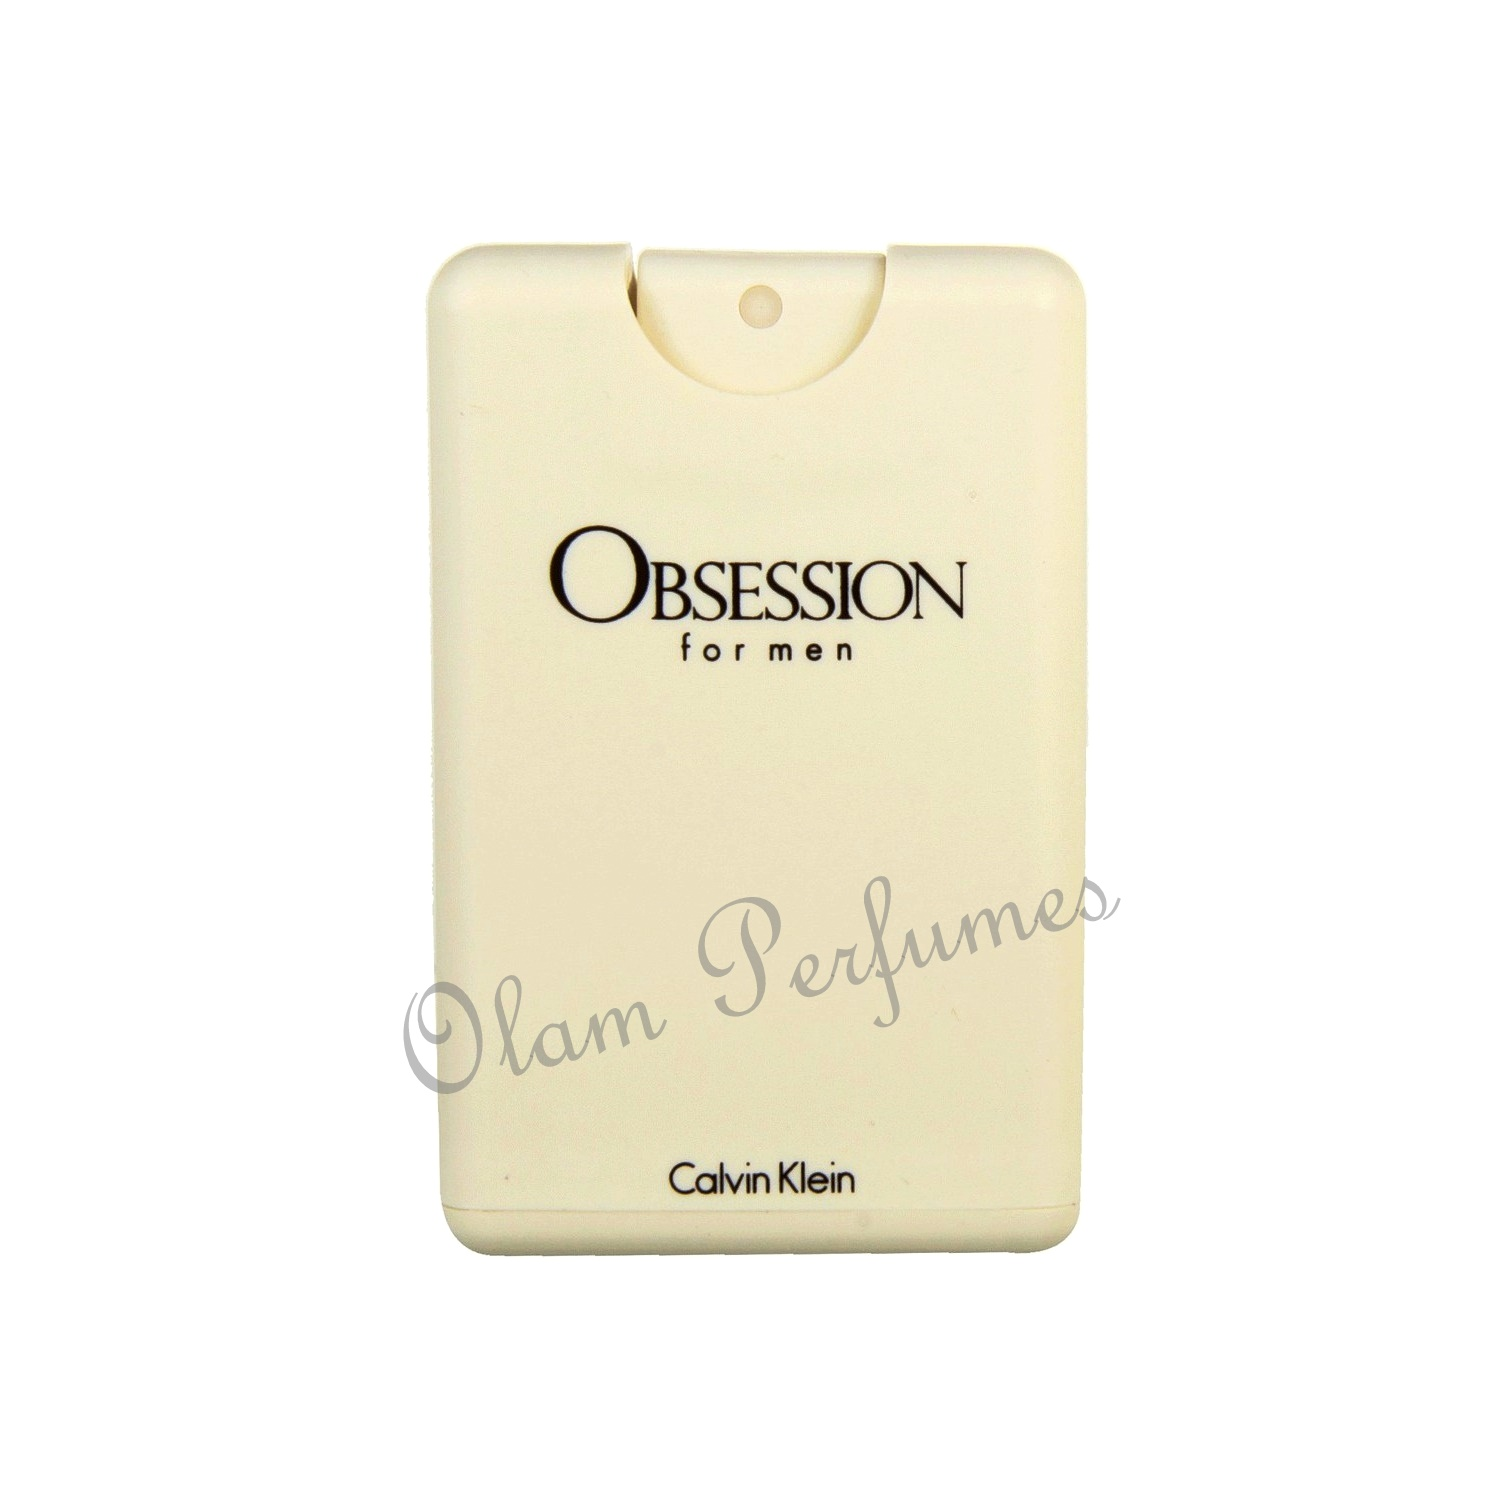 Calvin Klein Obsession For Men Eau de Toilette Spray 0.67oz 20ml